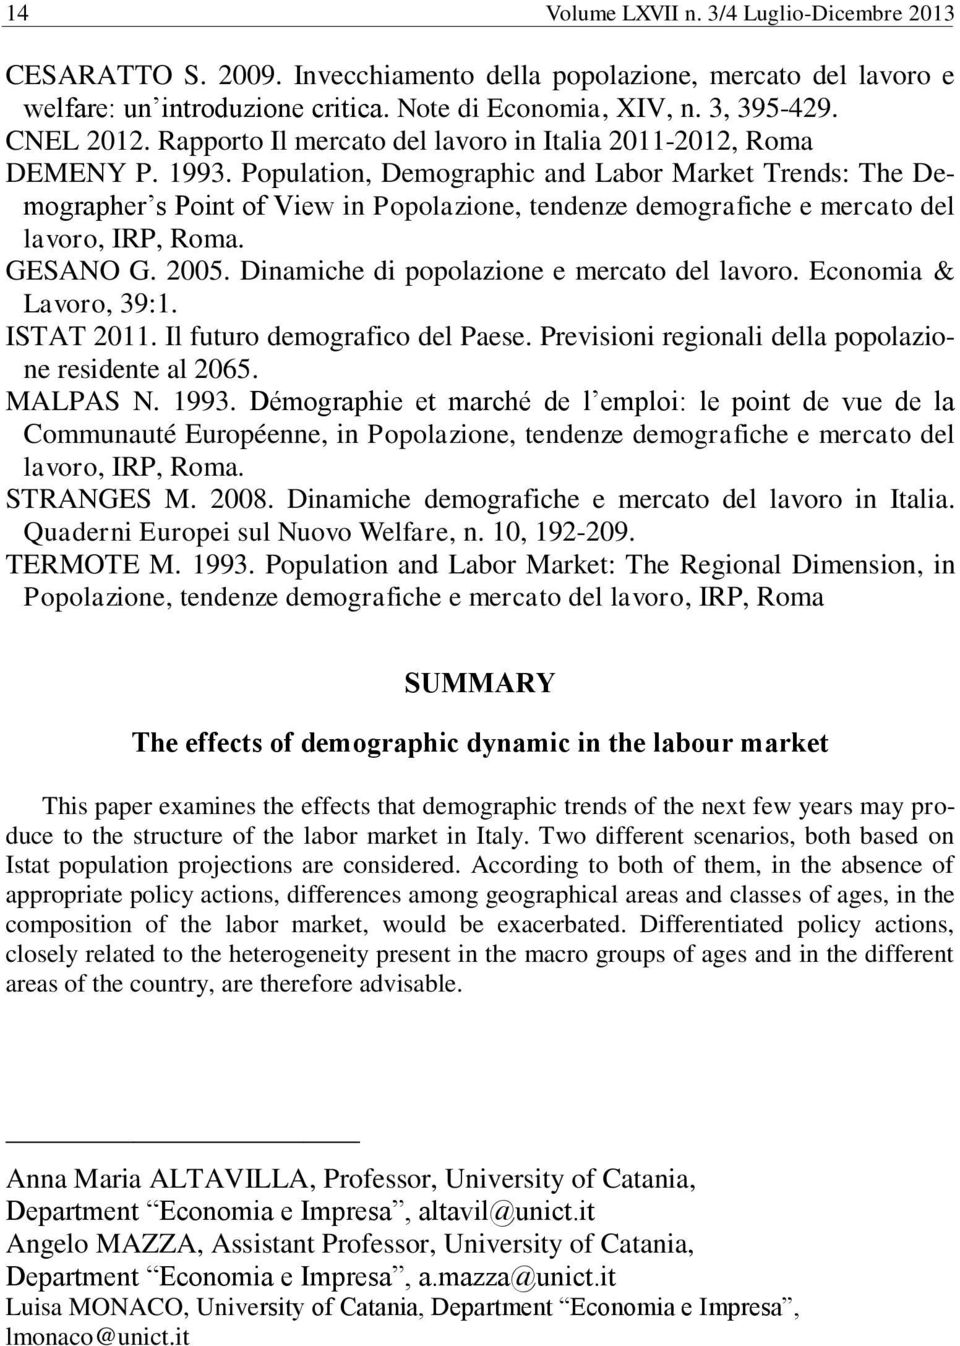 Population, Demographic and Labor Market Trends: The Demographer s Point of View in Popolazione, tendenze demografiche e mercato del lavoro, IRP, Roma. GESANO G. 2005.